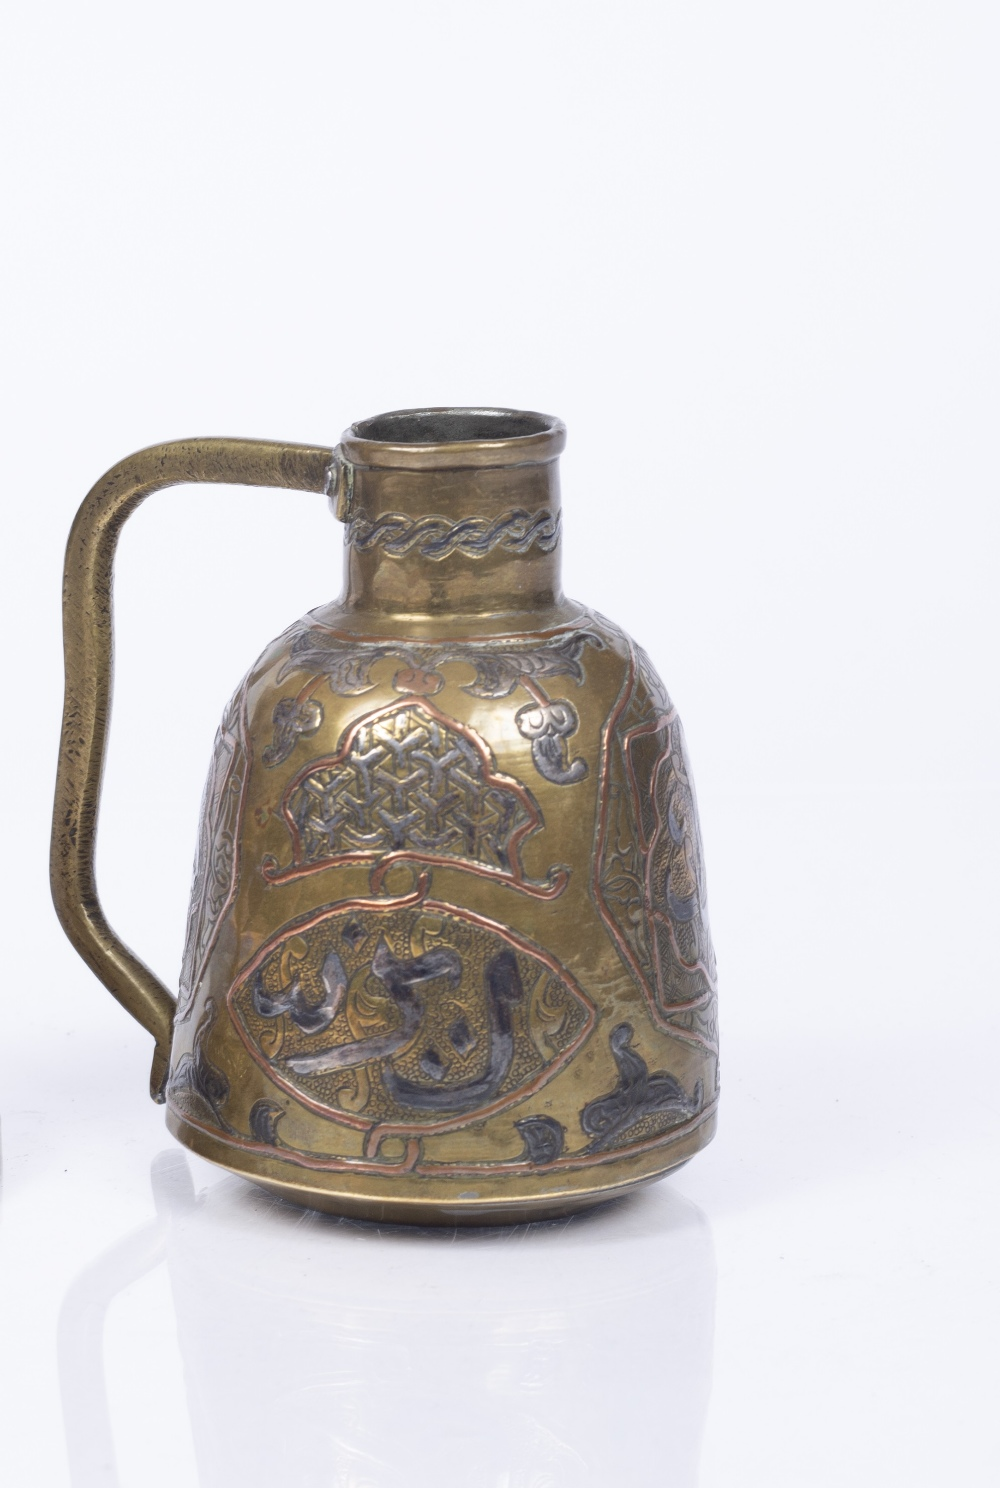 AN OLD ISLAMIC SILVERED, COPPER AND BRASS JUG chased and engraved with arabic calligraphy and formal - Image 2 of 2